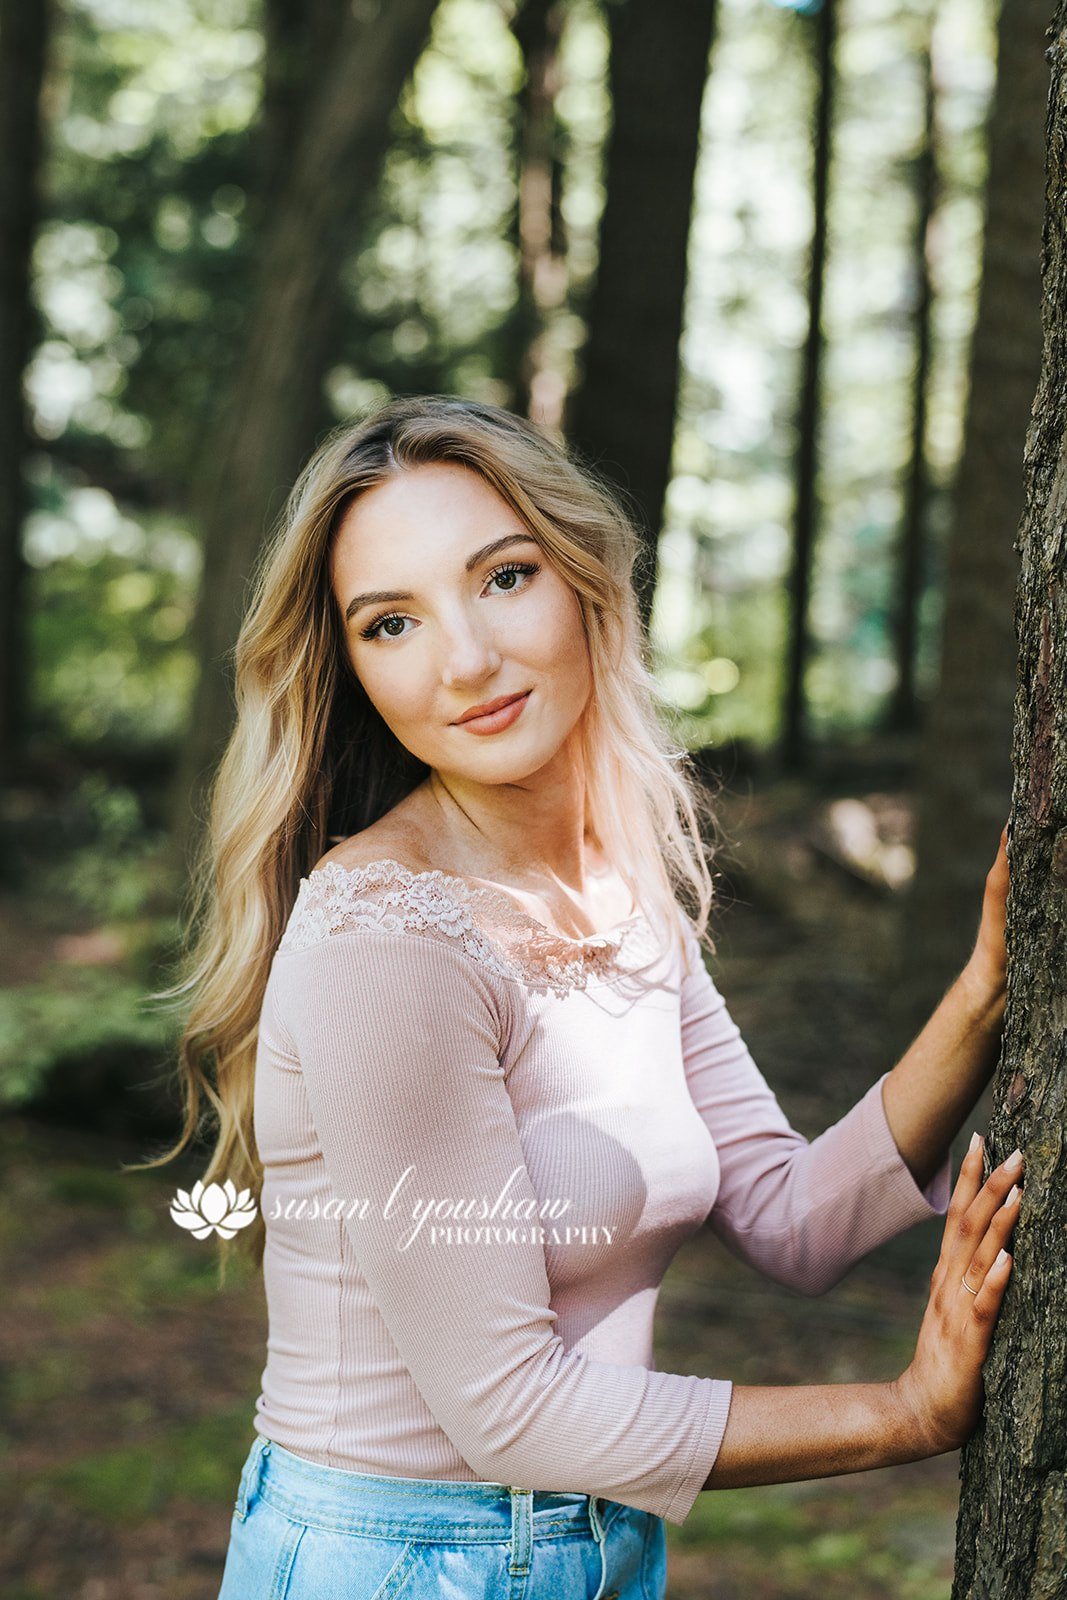 Gretta Levine Senior Photos 06-26-2019 SLY Photography LLC-59_websize.jpg